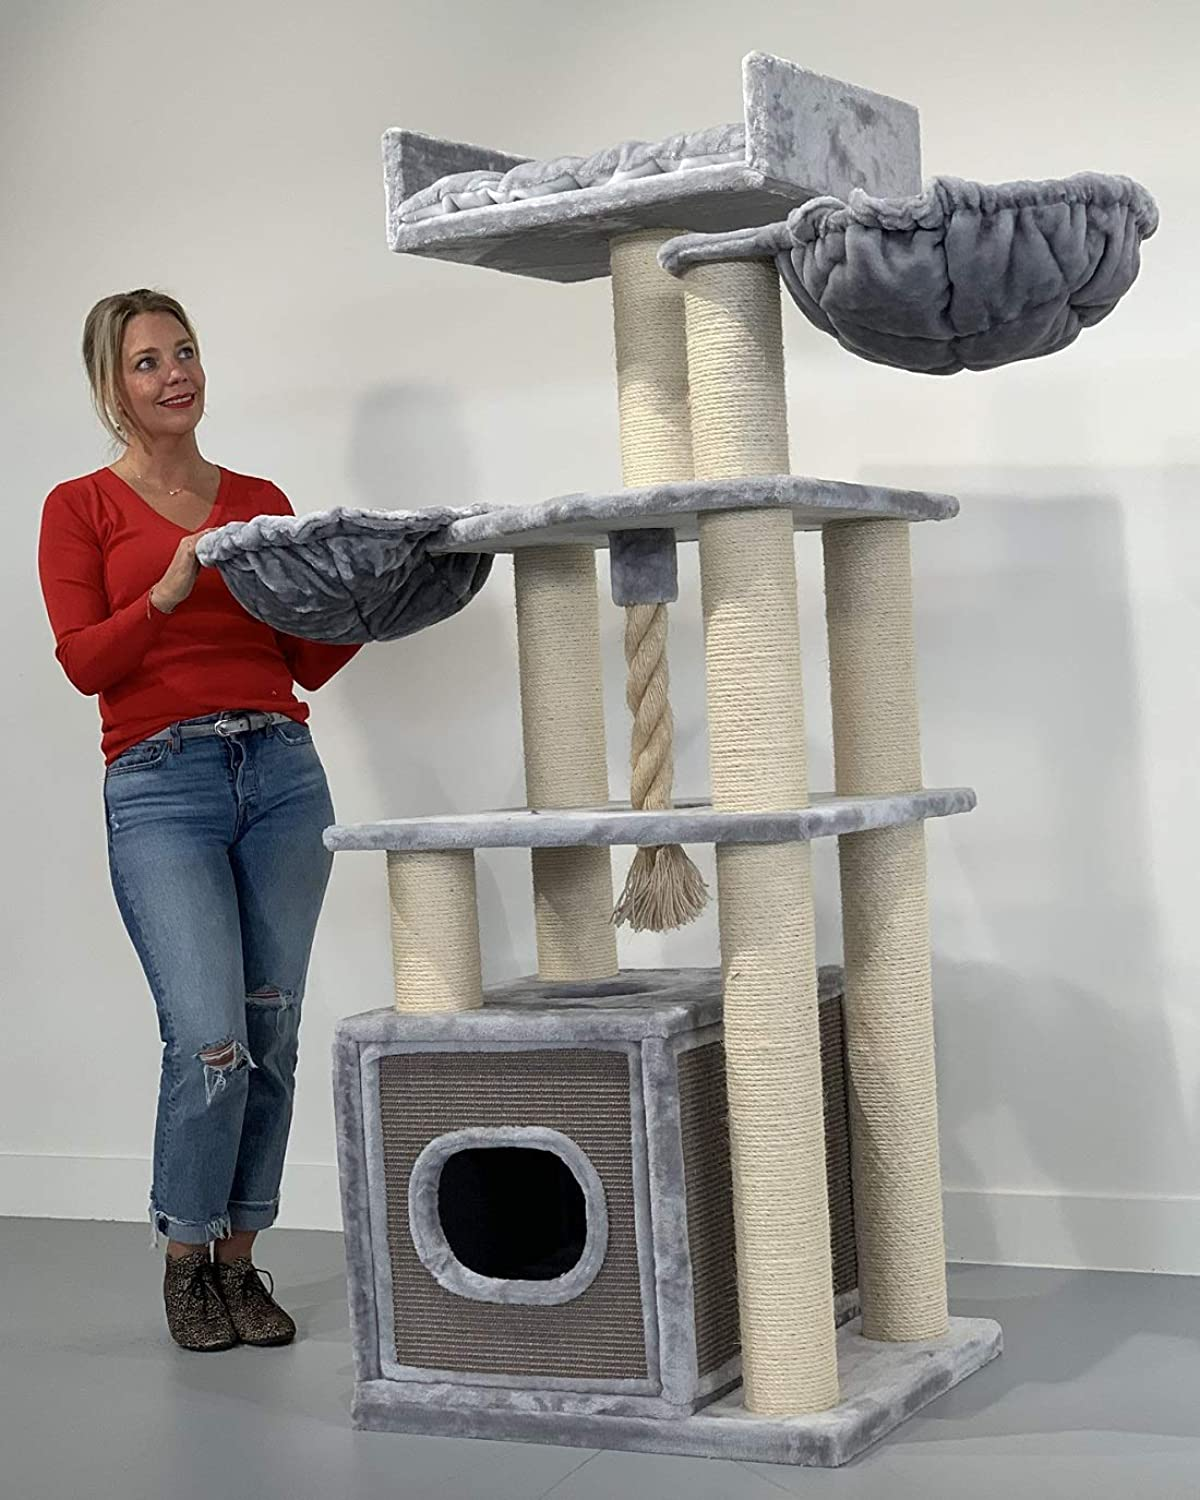 Cat tree for large cats Cat Relax PLUS Light Grey XXL extra big breed trees scratch post and adult towers furniture scratcher activity centre